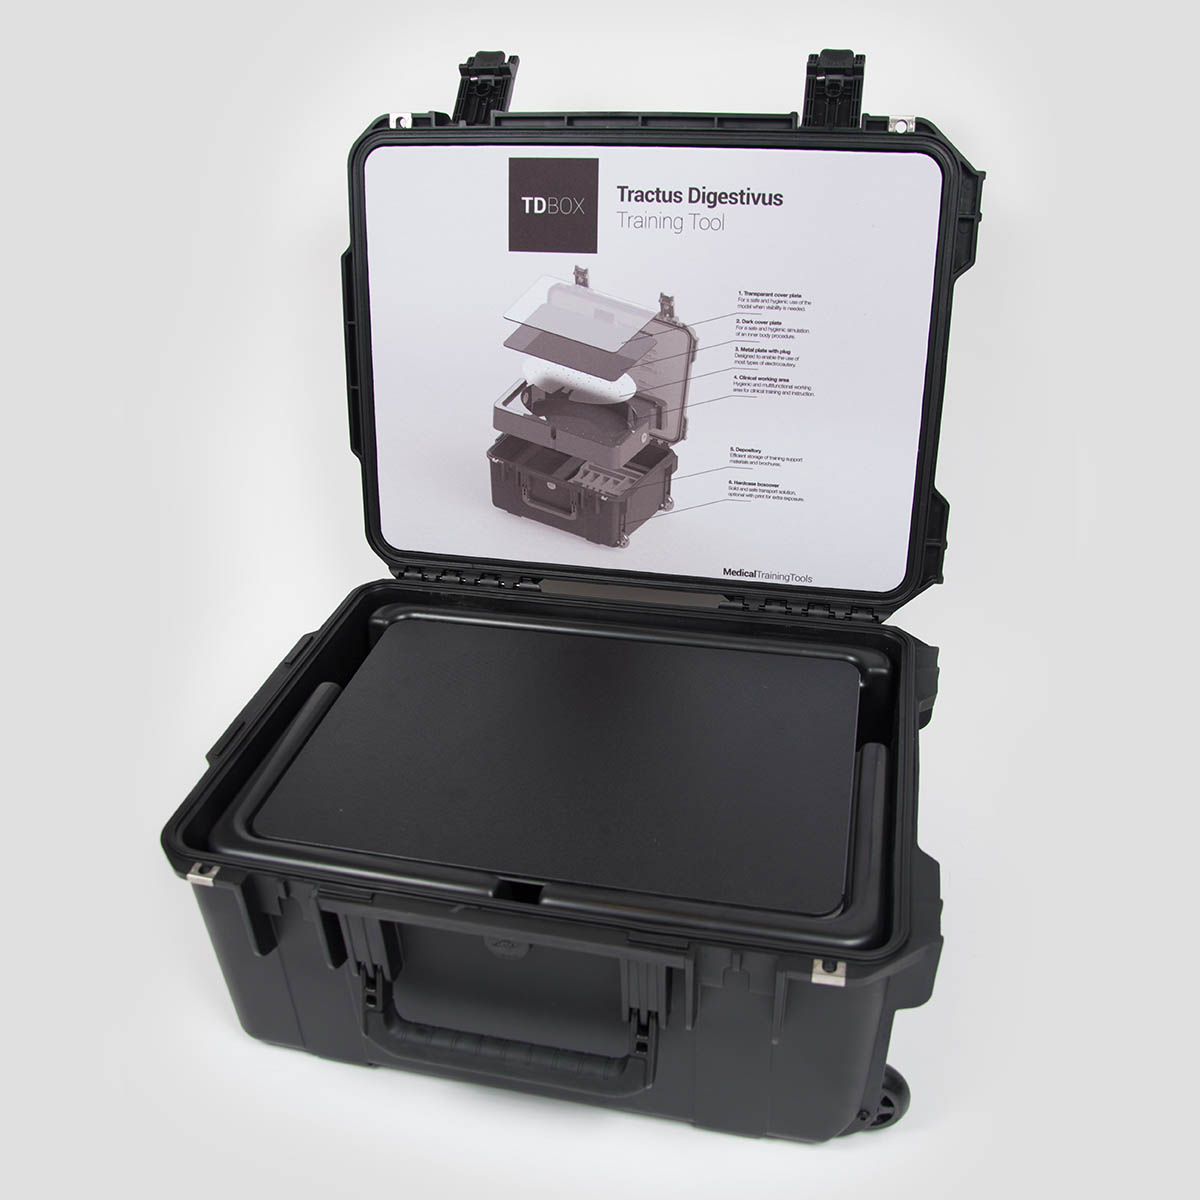 medical training tool TD box